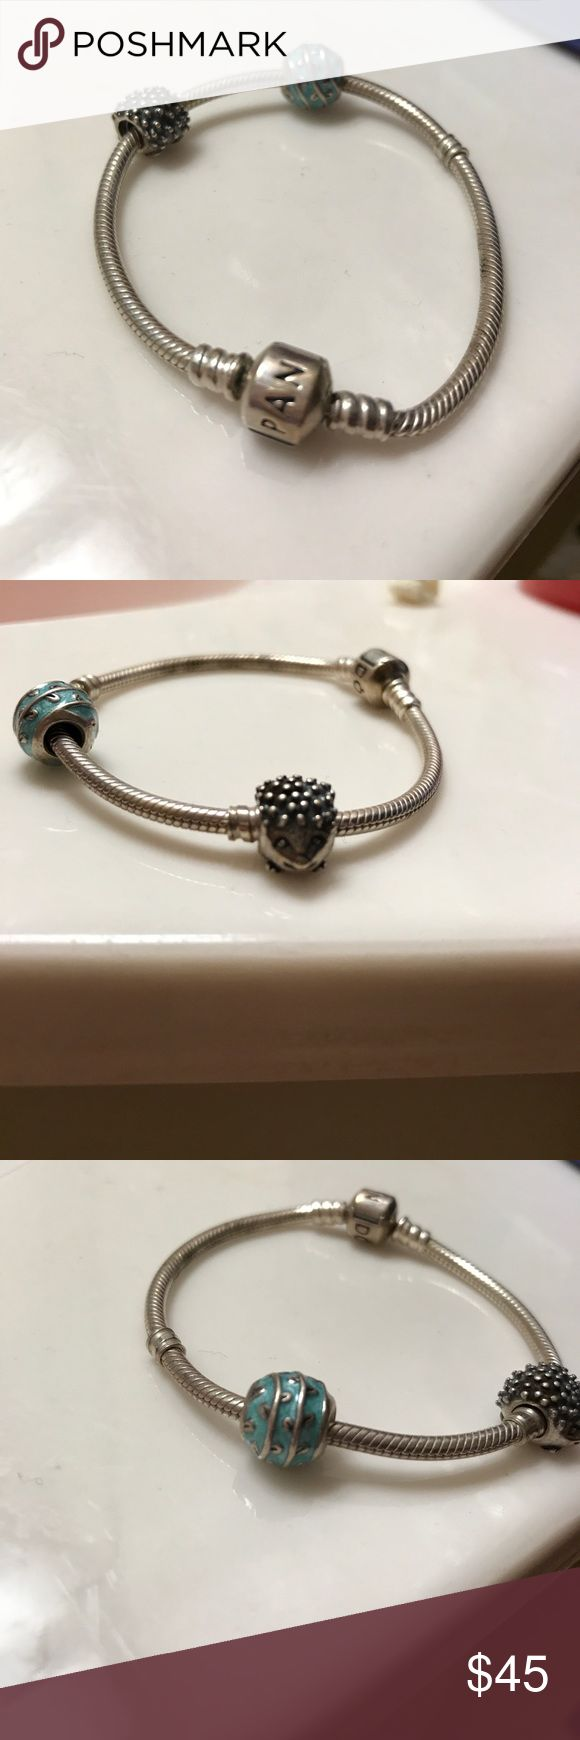 Pandora Bracelet with hedgehog & a leaf charm! One charm is a hedgehog and the other charm is blue with a leaf design through it. Small band. (The pictures of the charm alone are taken from the website. My charm is a lighter shade of blue but same design). Price negotiable and bundles welcome Pandora Jewelry Bracelets